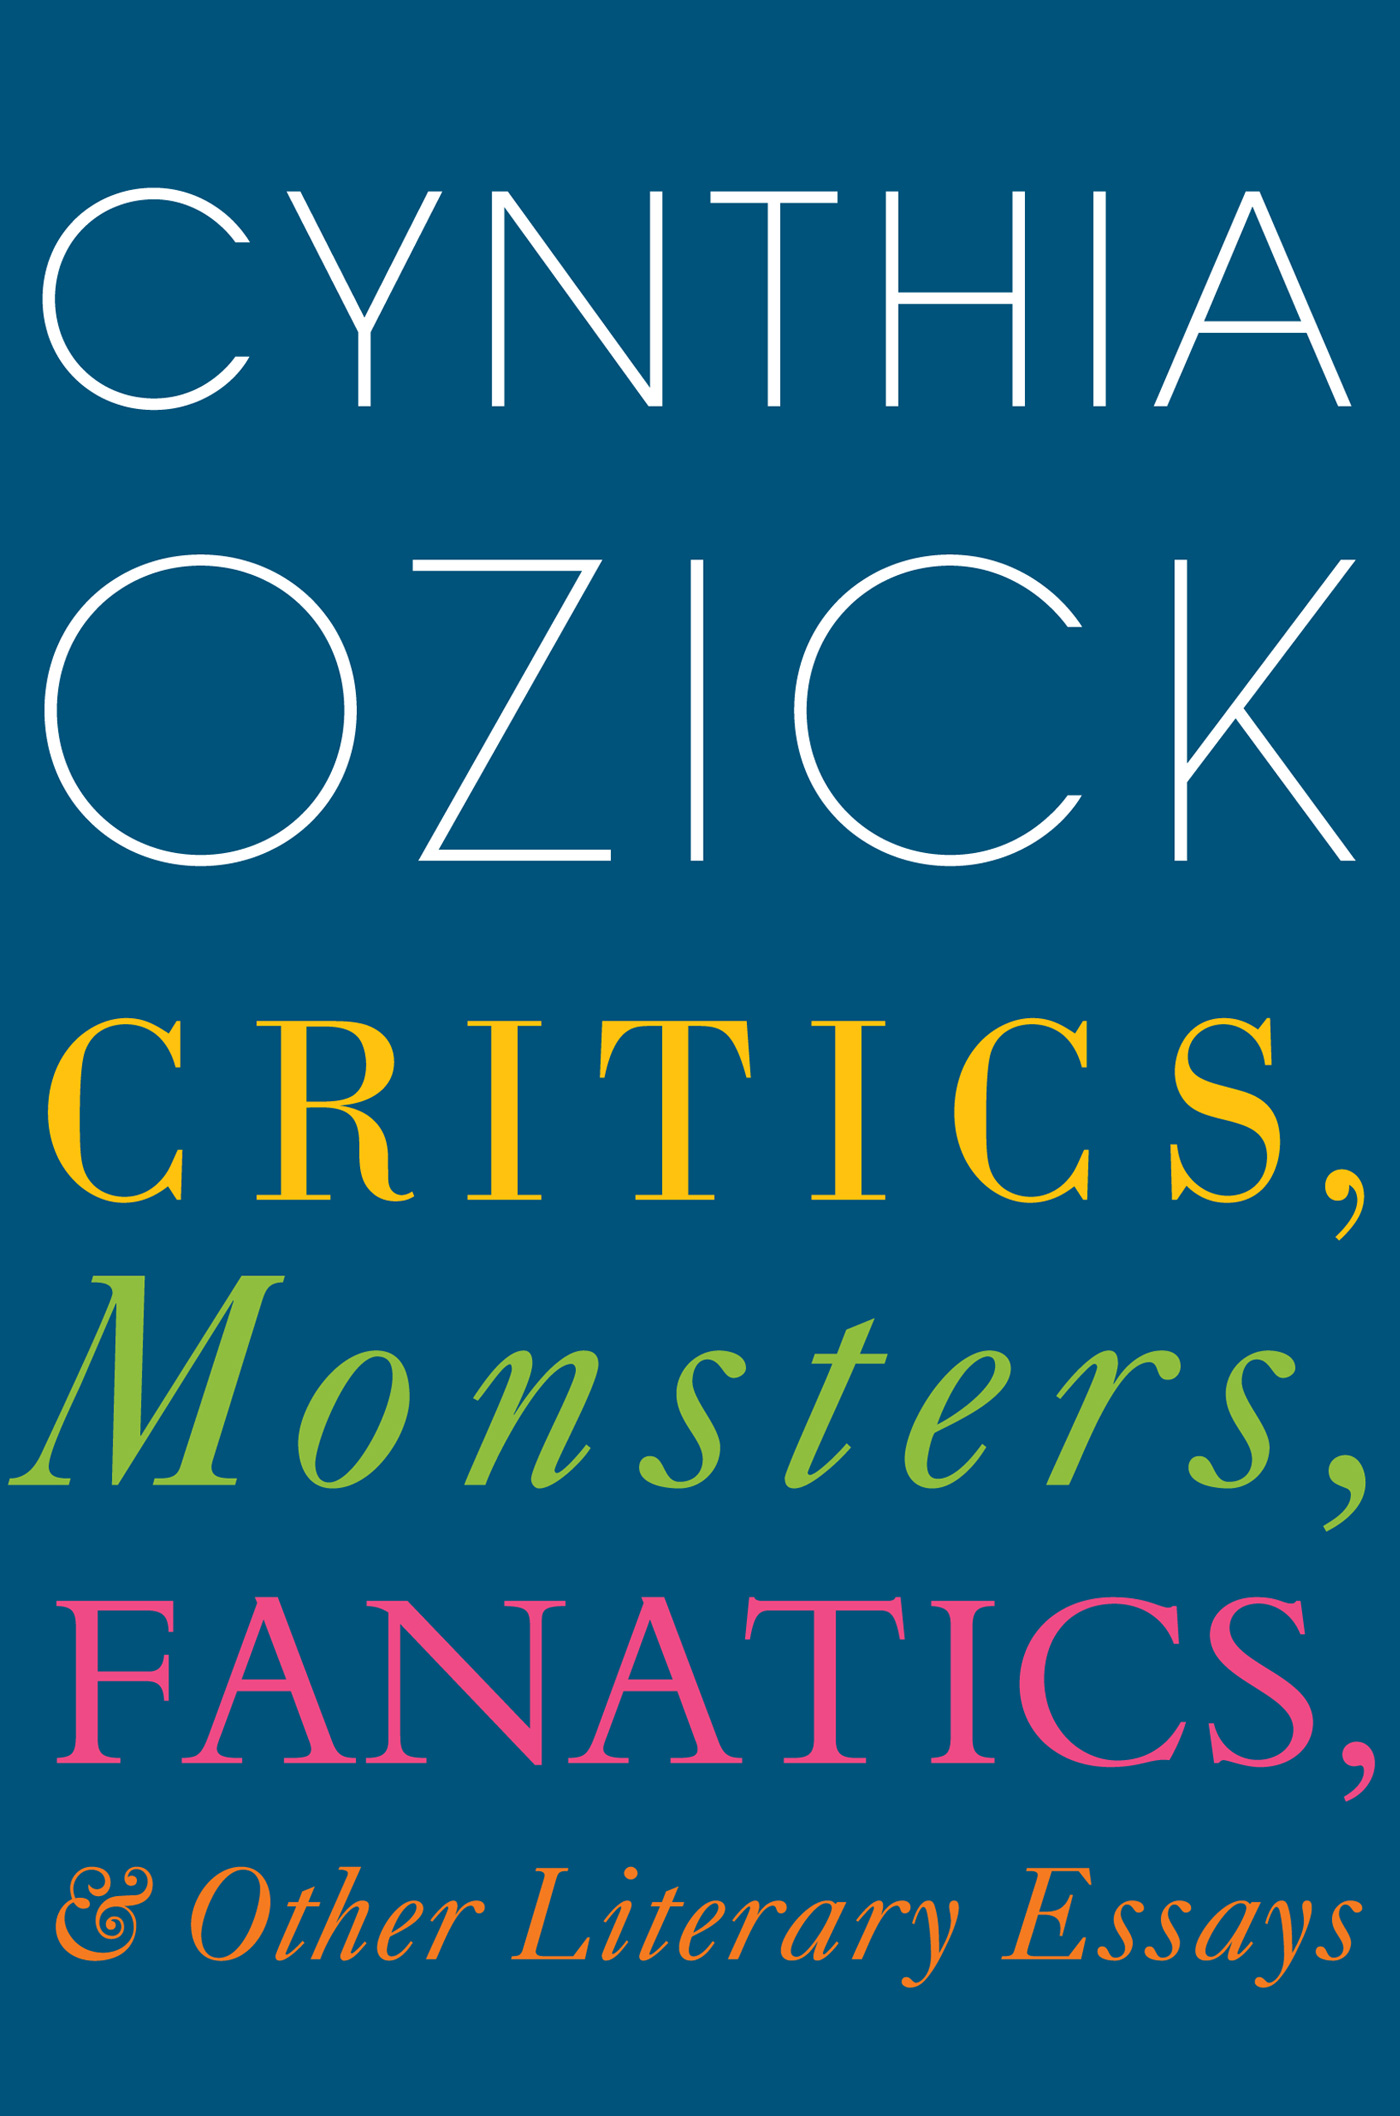 Critics, Monsters, Fanatics, and Other Literary Essays-9780544703711